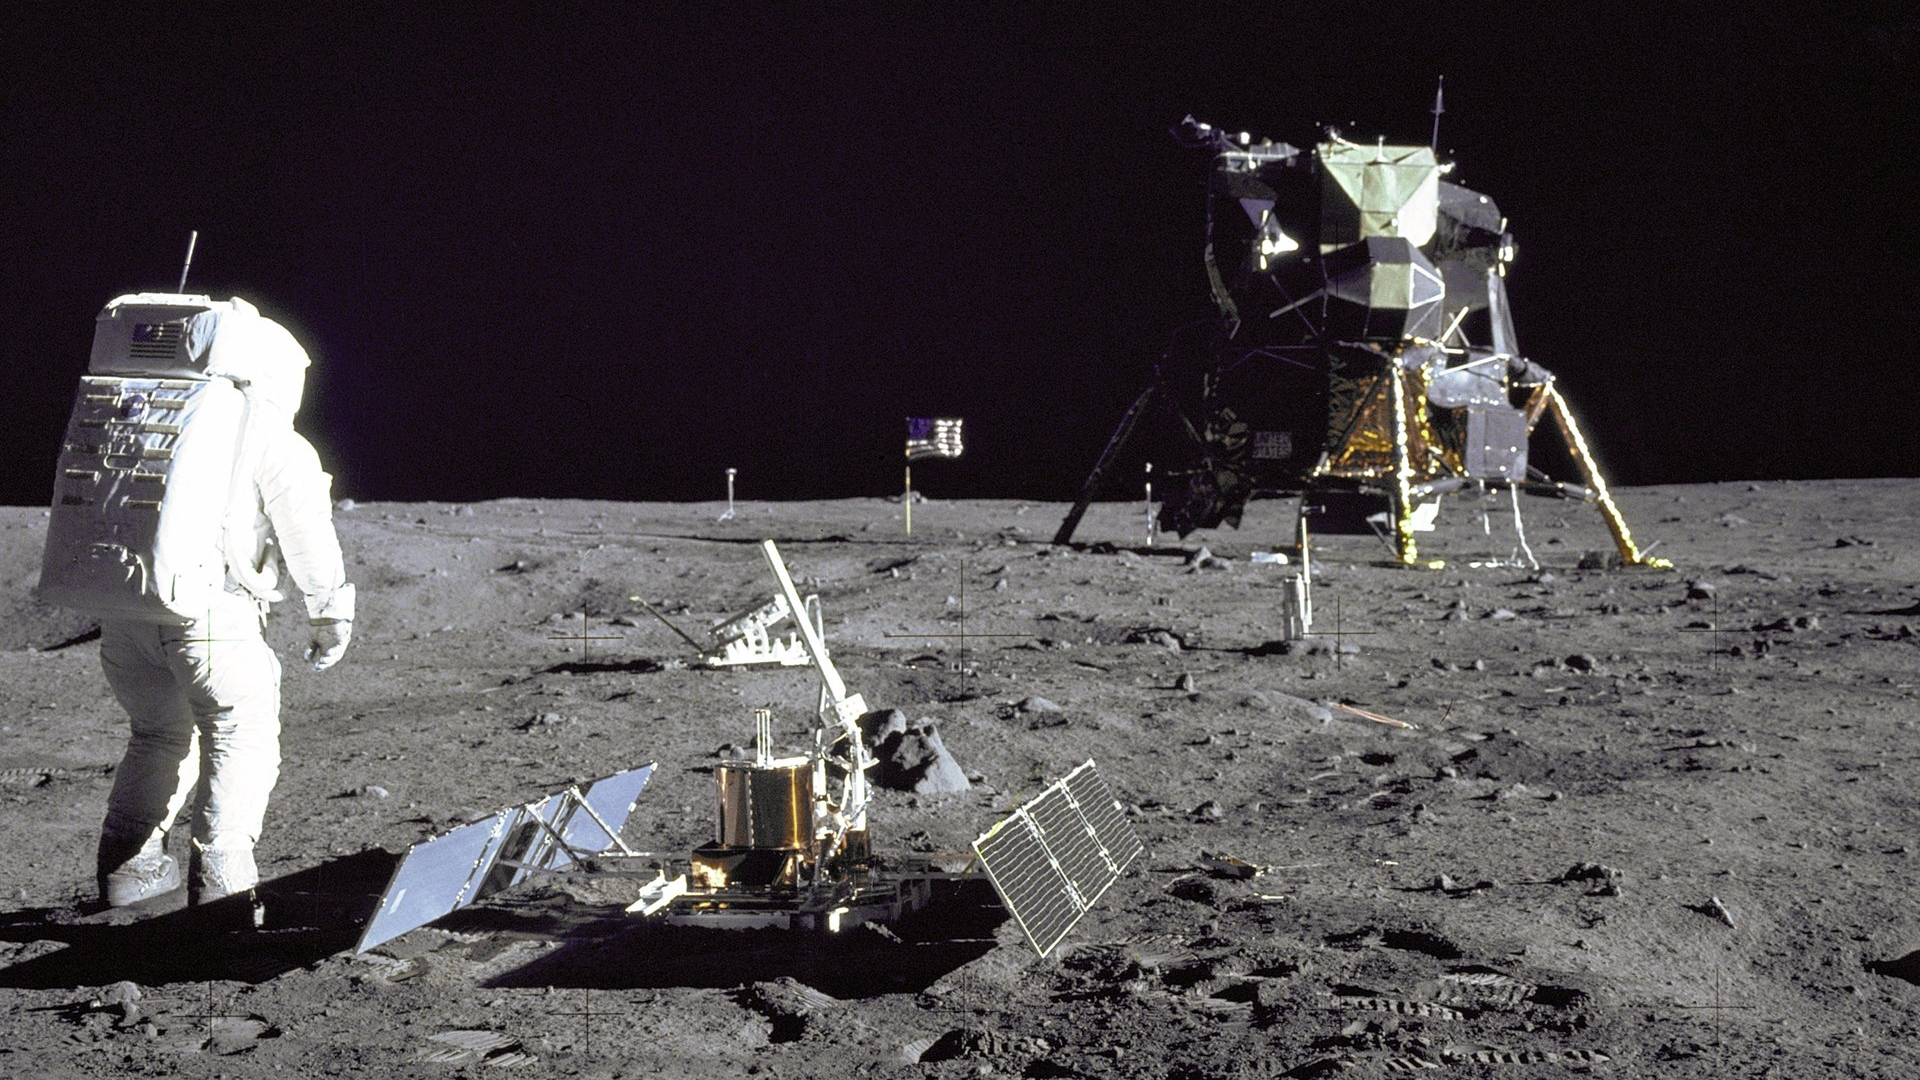 Free Download Apollo 11 Man On The Moon Wallpapers And Images